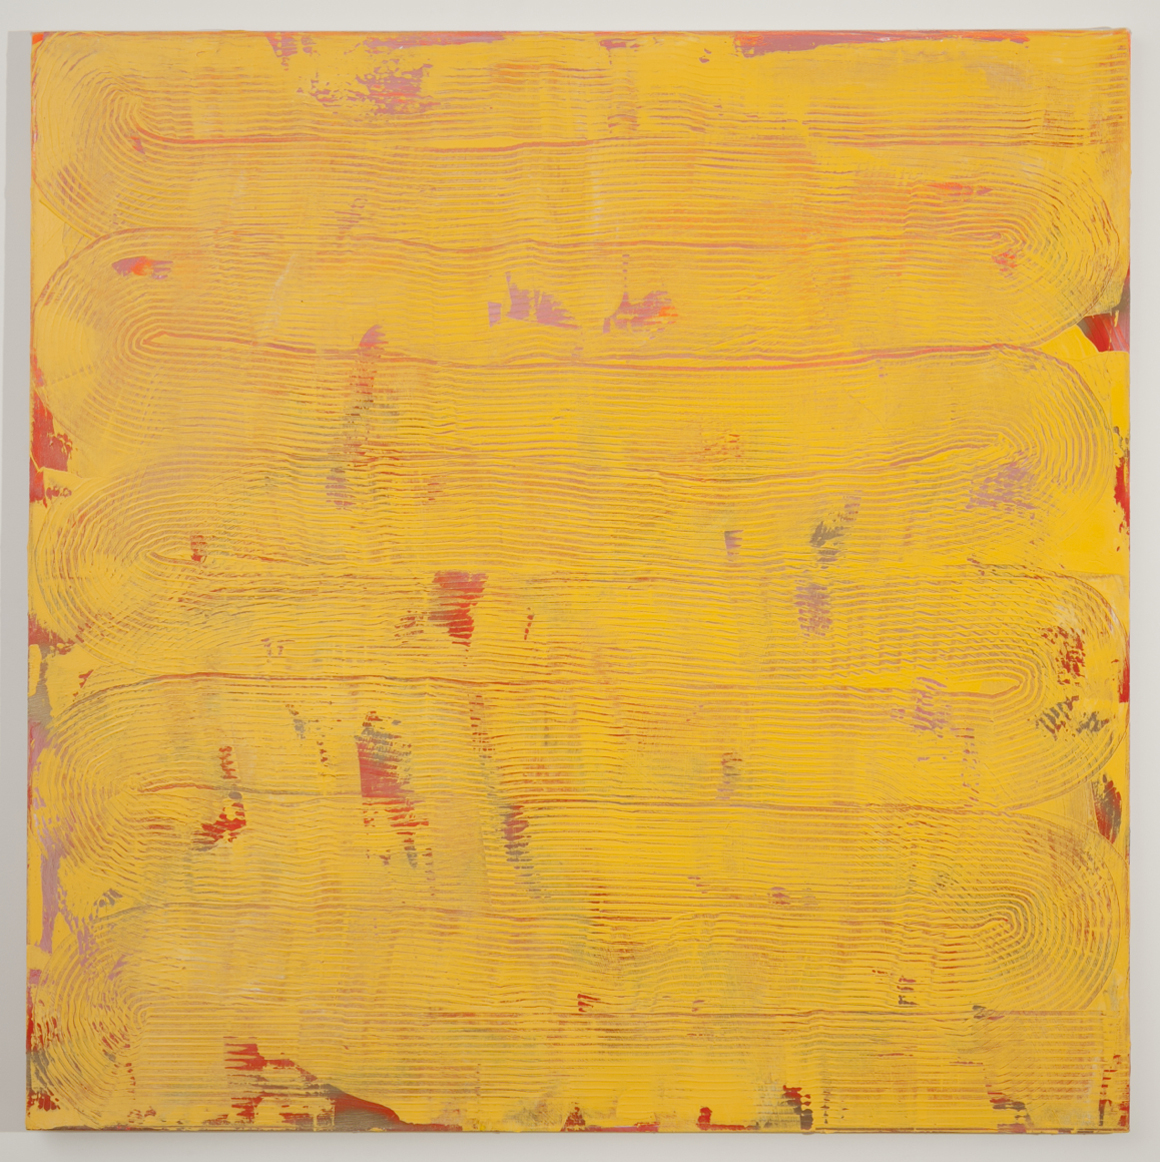 "<p><span class=""name"">Adam Bateman</span><br><em>Yellow</em><span class='media'>acrylic and spray paint on canvas</span>72 x 72in<br>2014<br><a class='inquire' href='mailto:info@gildargallery.com?subject=Artwork Inquiry ABAT0008&body=I am interested in finding out more about Yellow by Adam Bateman'>Inquire</a></p>"